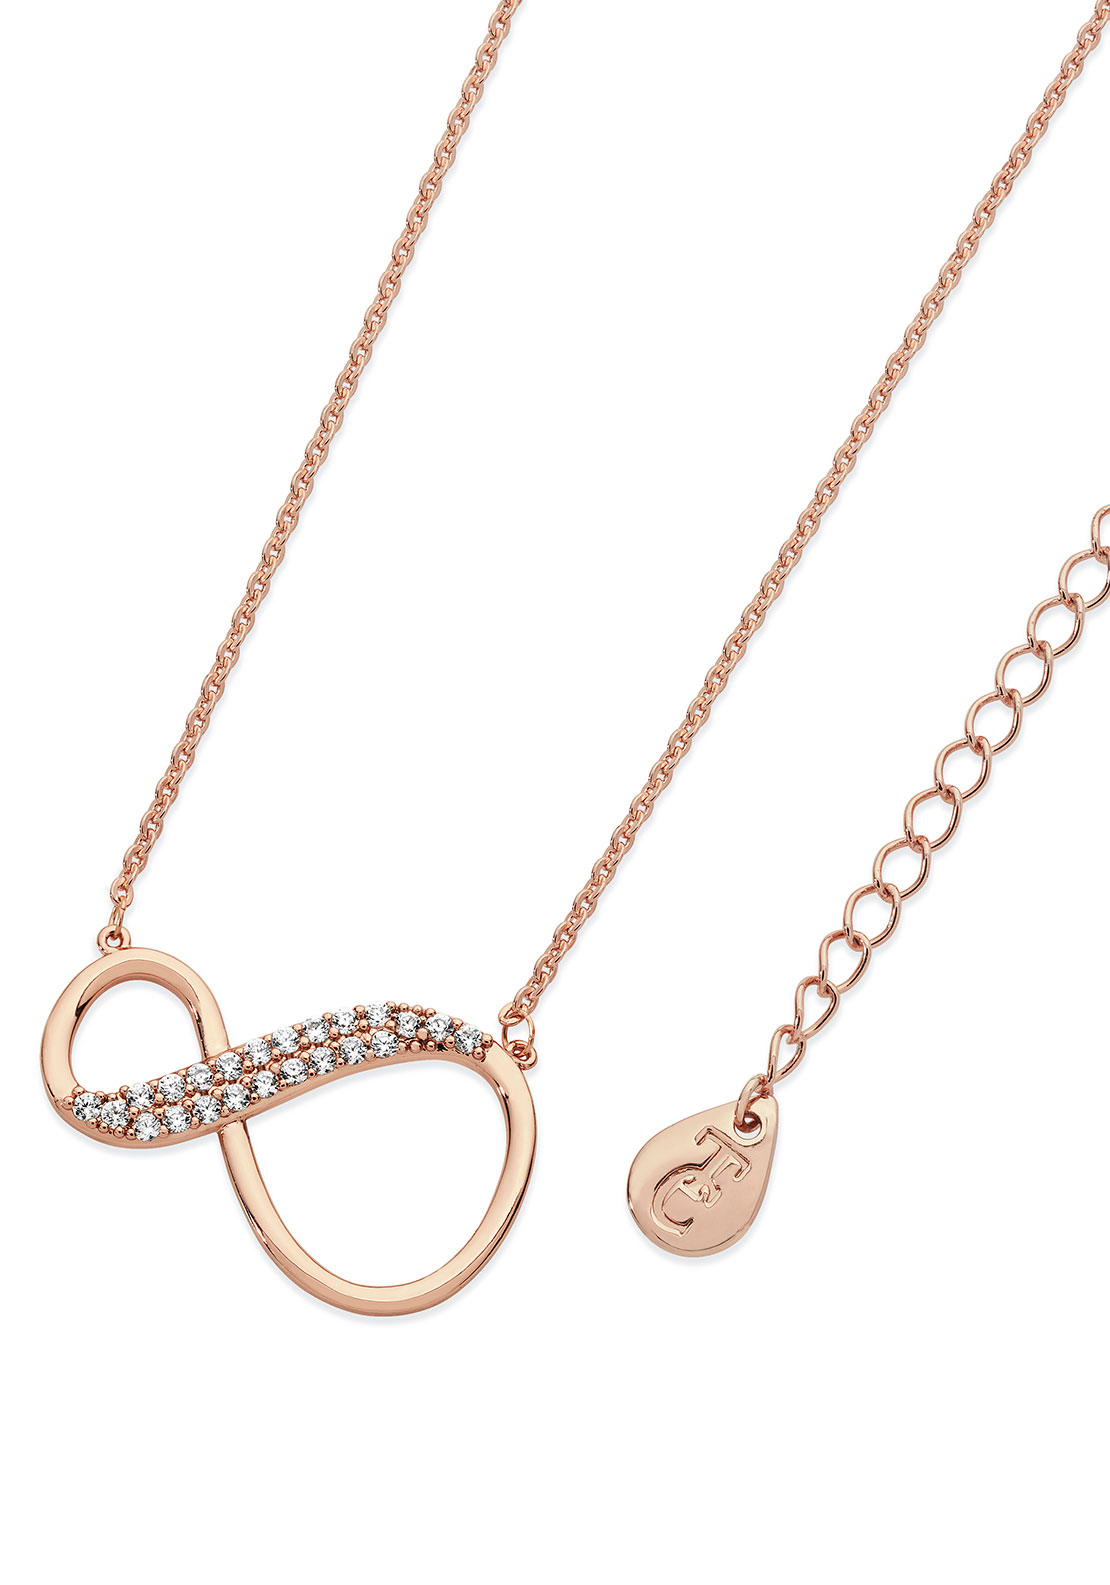 Tipperary Crystal 8 Shape Infinity Necklace, Rose Gold